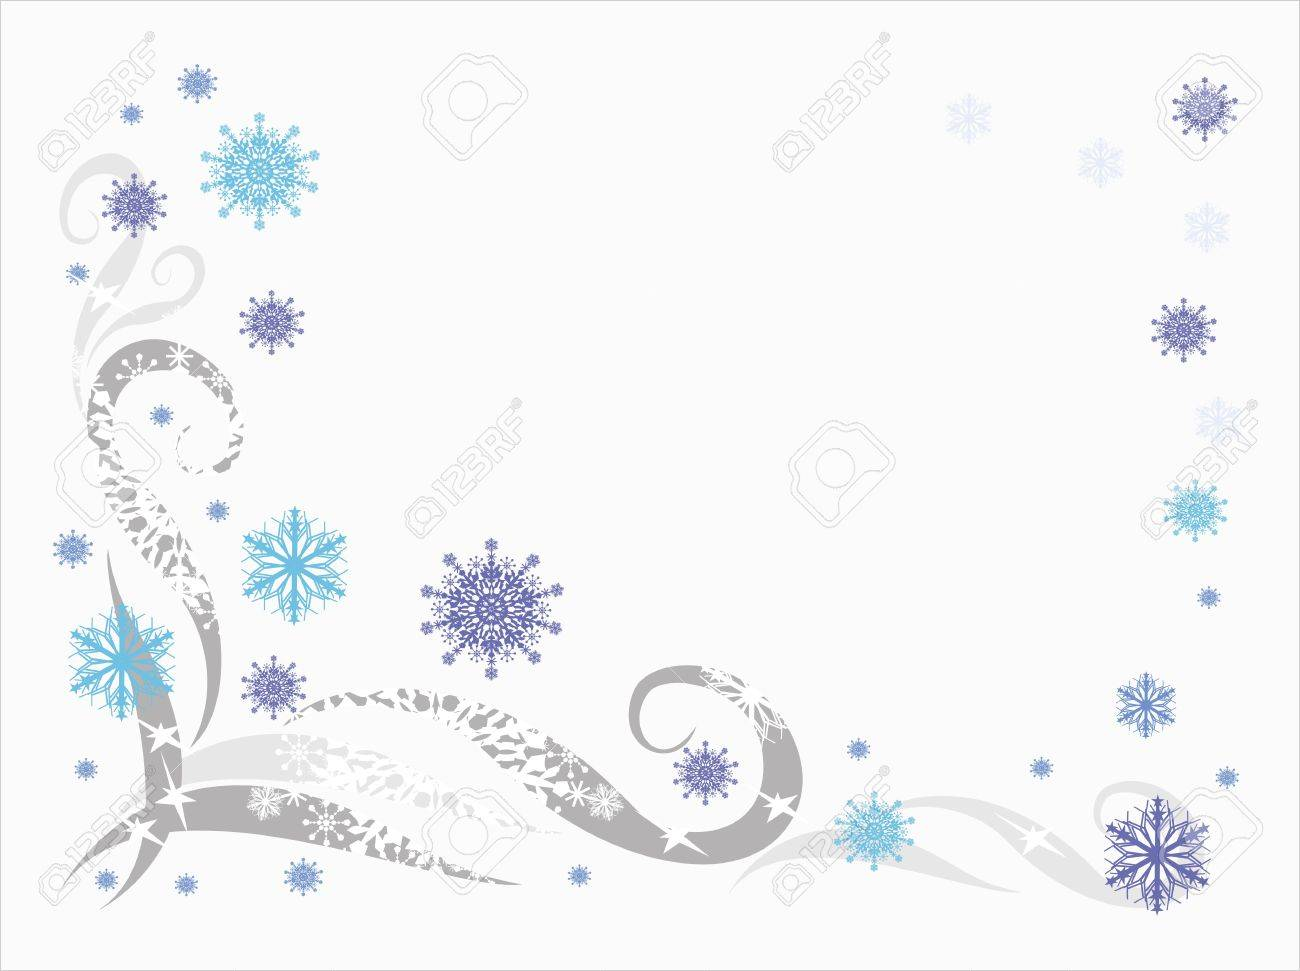 Winter background with snowflakes and patterns Stock Vector - 15477564